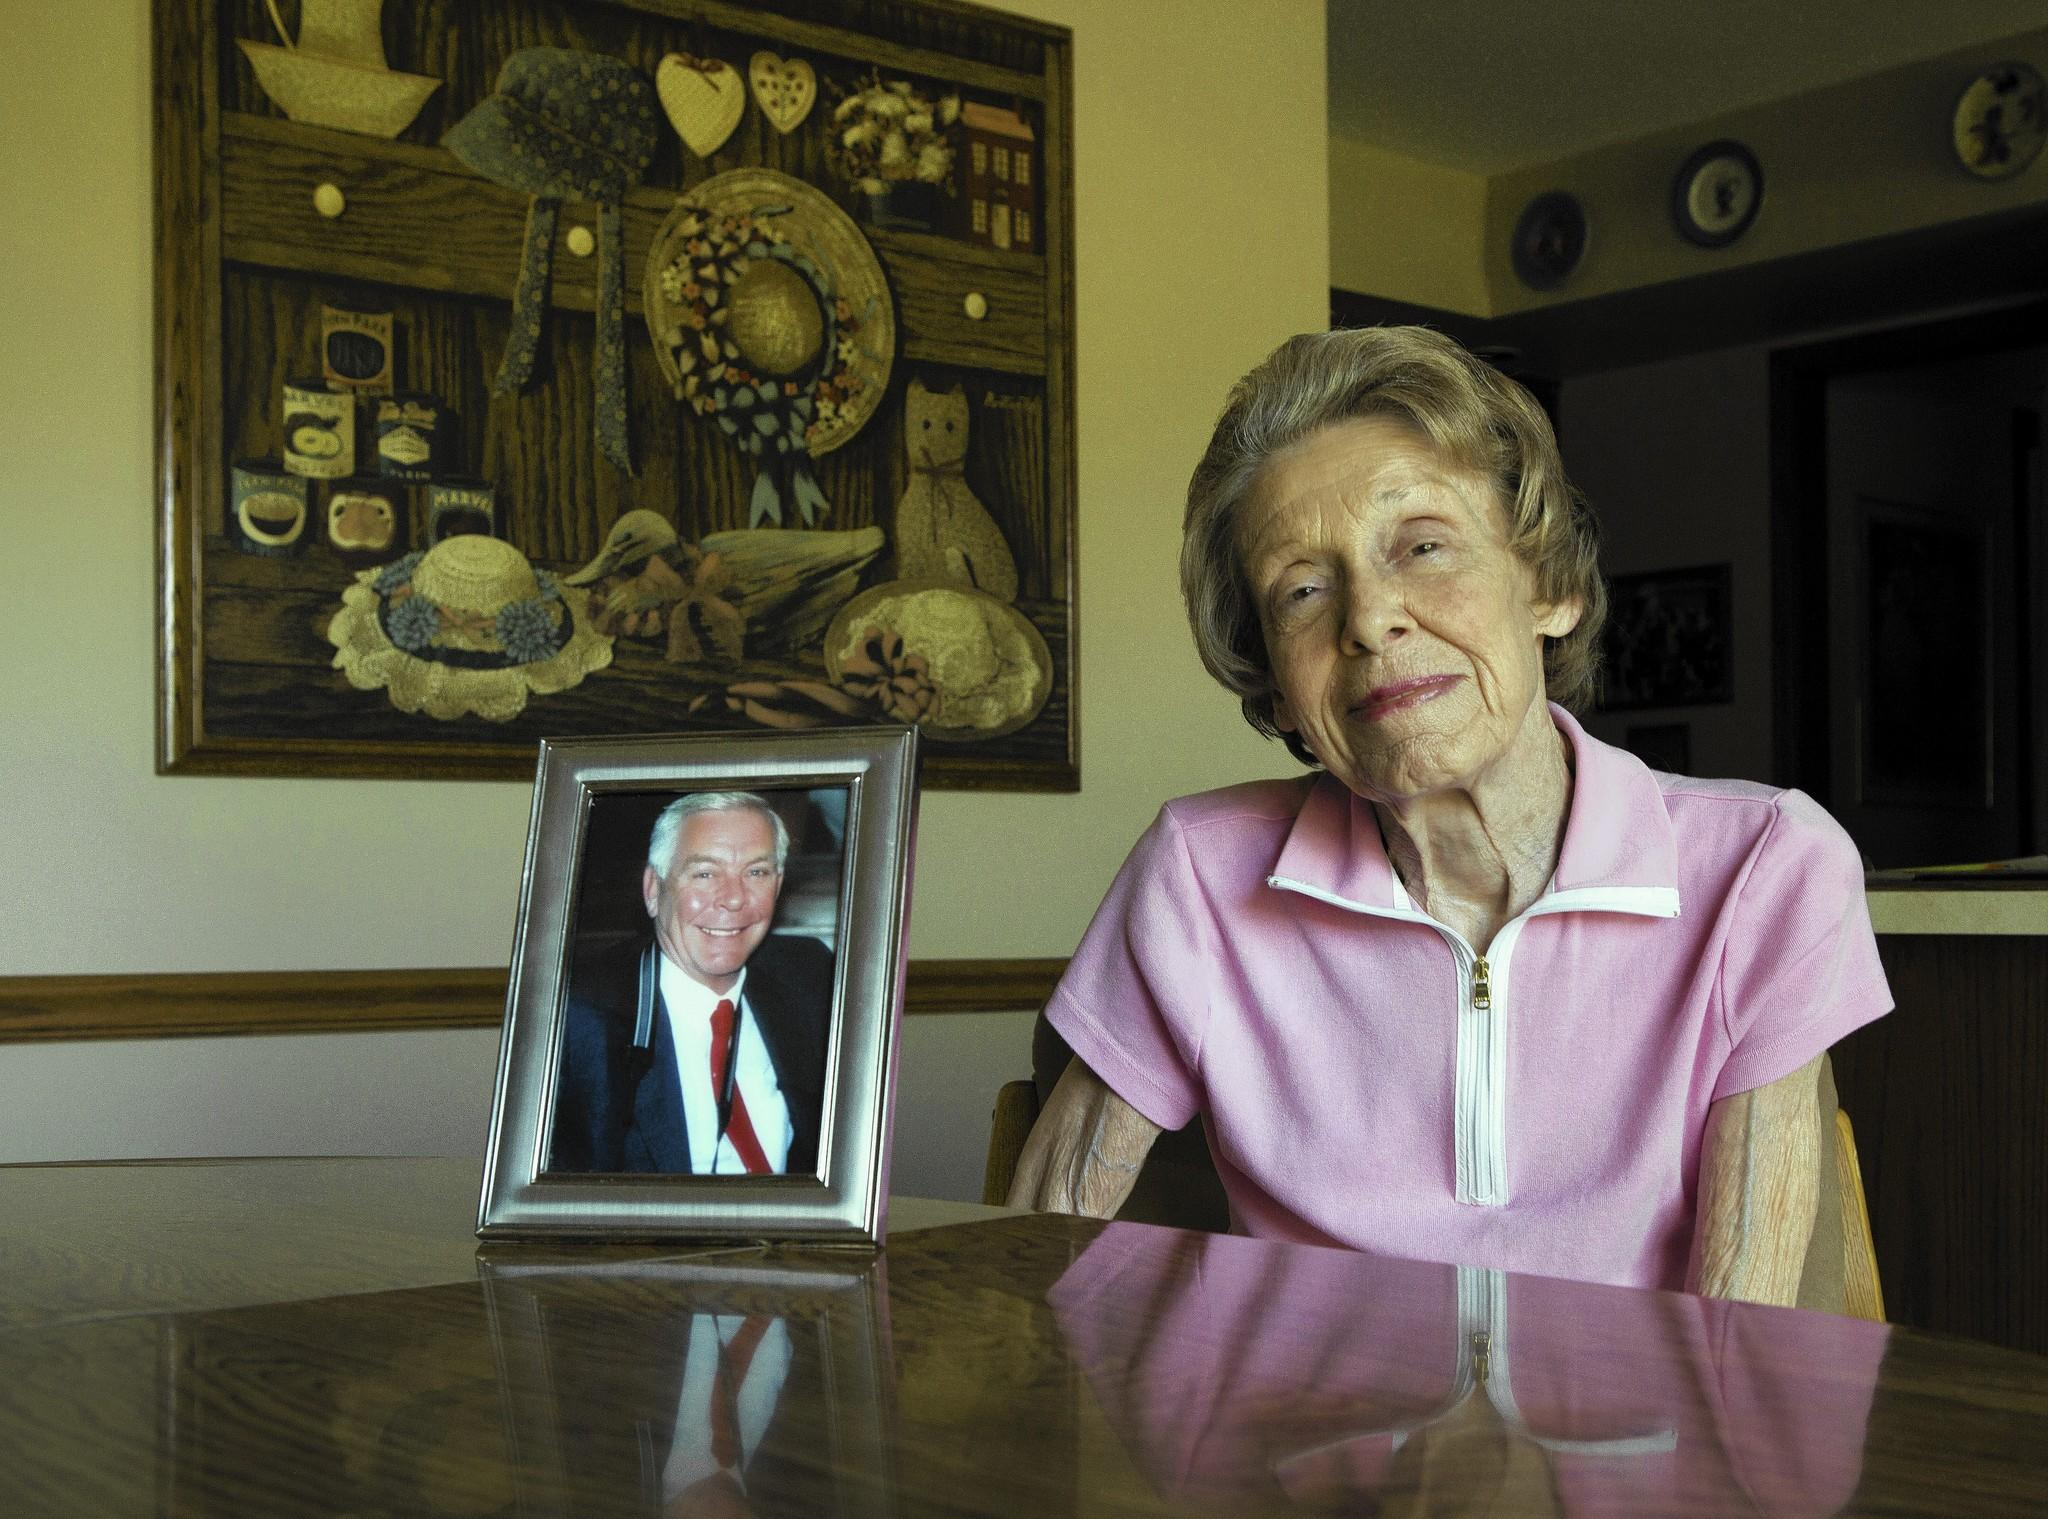 In August, Joan Ezell, 79, shows a photo of her late husband, Jack, who may have given money that's in a state unclaimed property fund. She had been seeking the funds since 2012, but she died this month before the check arrived.